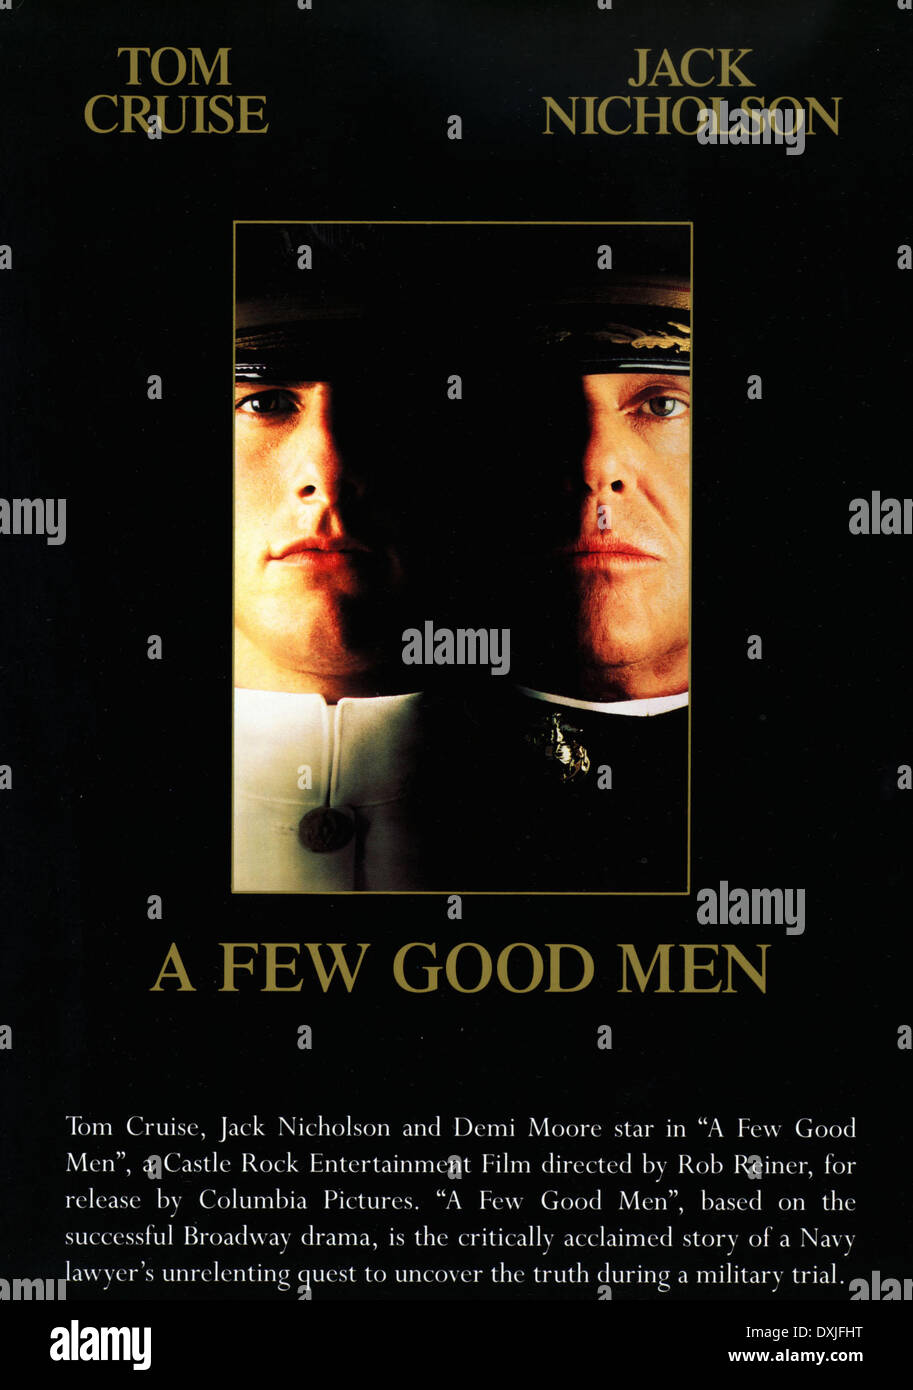 A Few Good Men Stock Photos & A Few Good Men Stock Images - Alamy